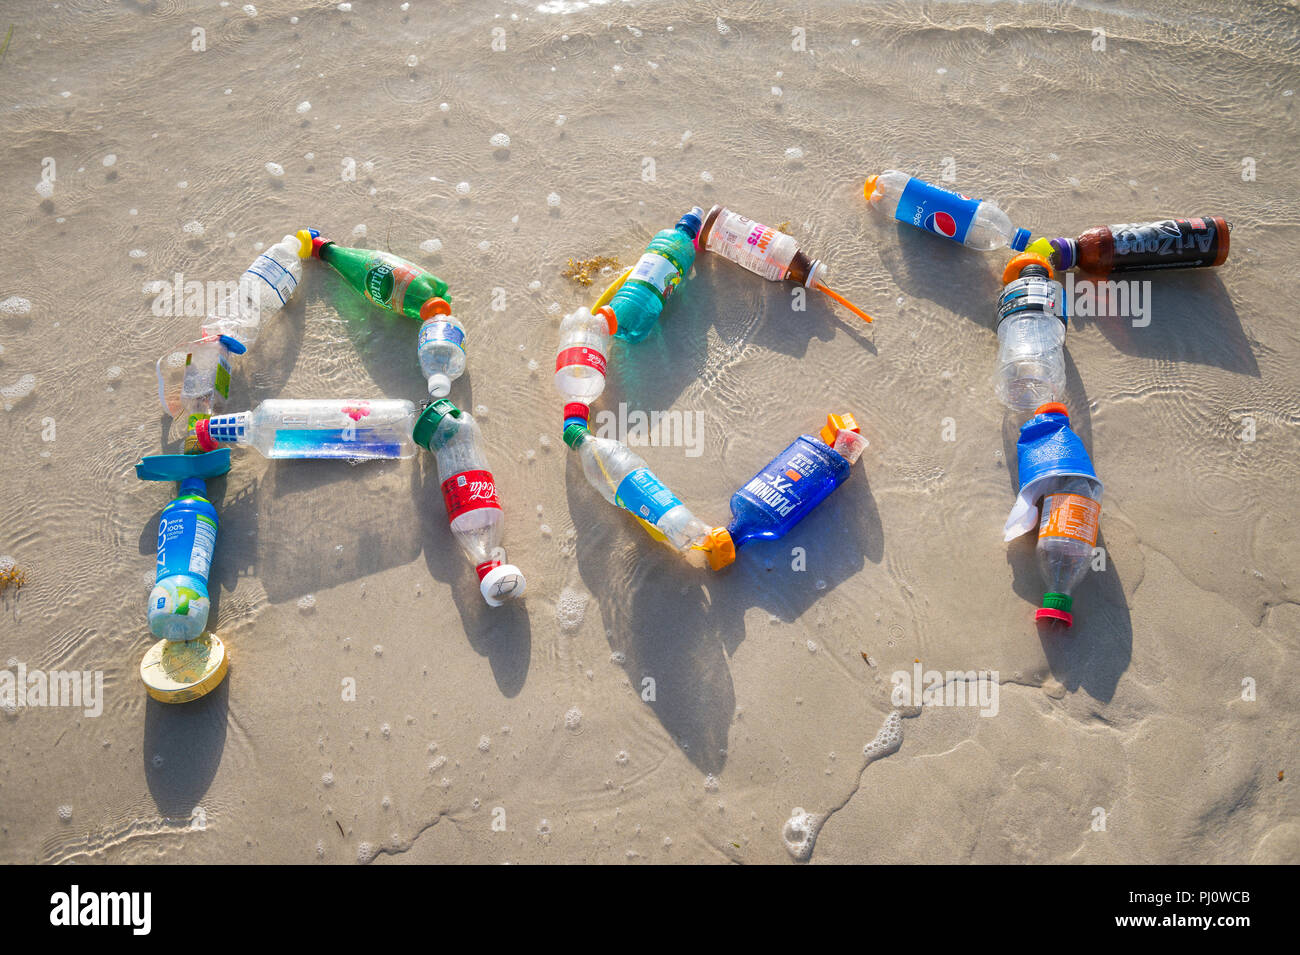 MIAMI - CIRCA JULY, 2018: 'Act' spelled out in the sand using garbage collected on Miami beach and in the sea. Reduce, reuse, recycle - Stock Image